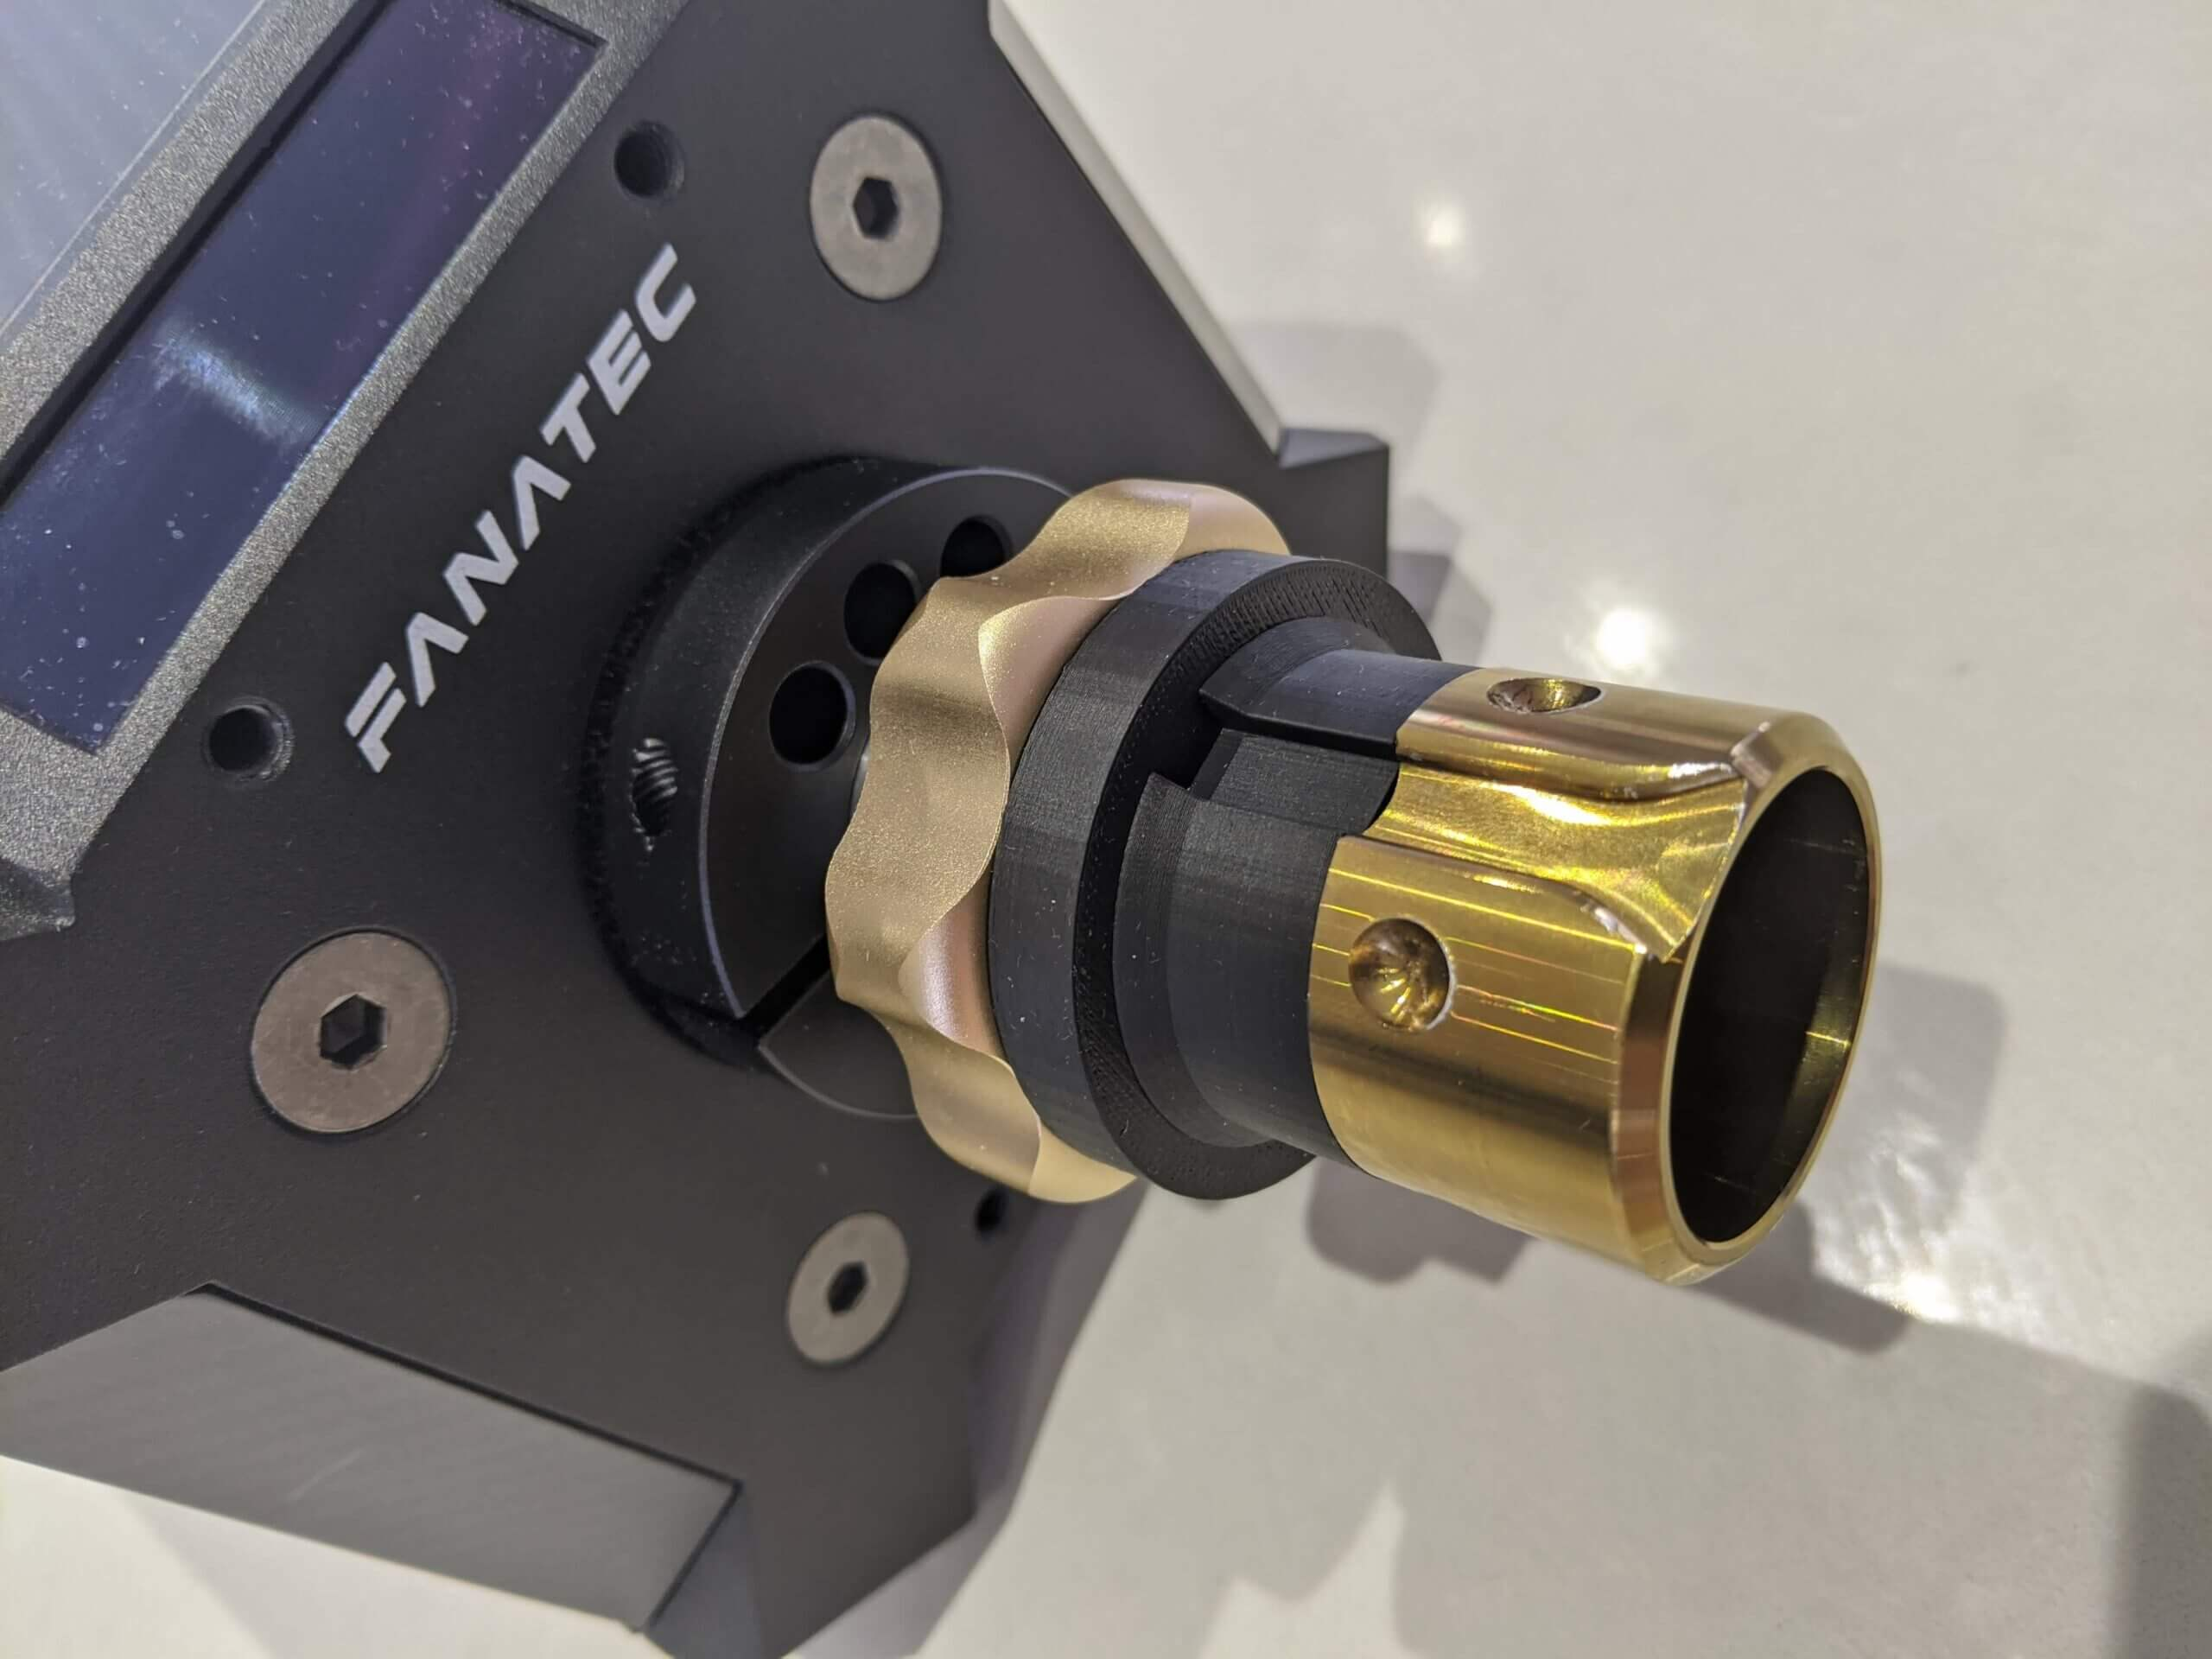 fanatec dd2 hub with z-ring installed